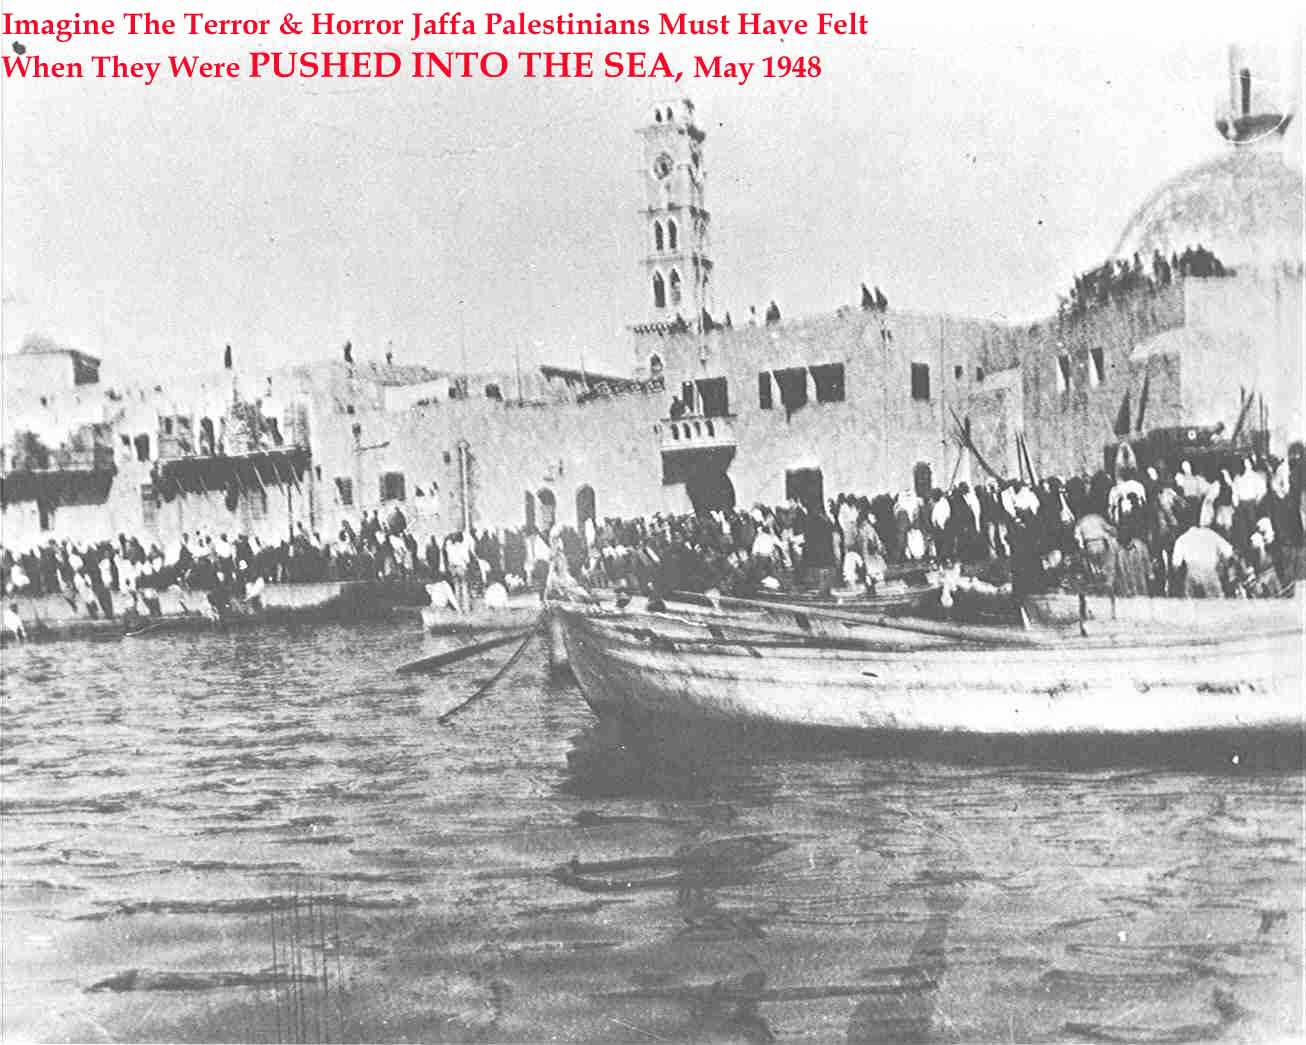 Jaffa - يافا : The Exodus Of Jaffa's Residents Via Boats, May-1948. <a href=/Acre/Acre/Picture13753.html>Click here</a> to see another unique picture for the people of Acre (Akka) as they were being pushed into the see. Ironically, Israelis claim that Palestinians are trying to commit this crime! Click on image to see a larger picture.